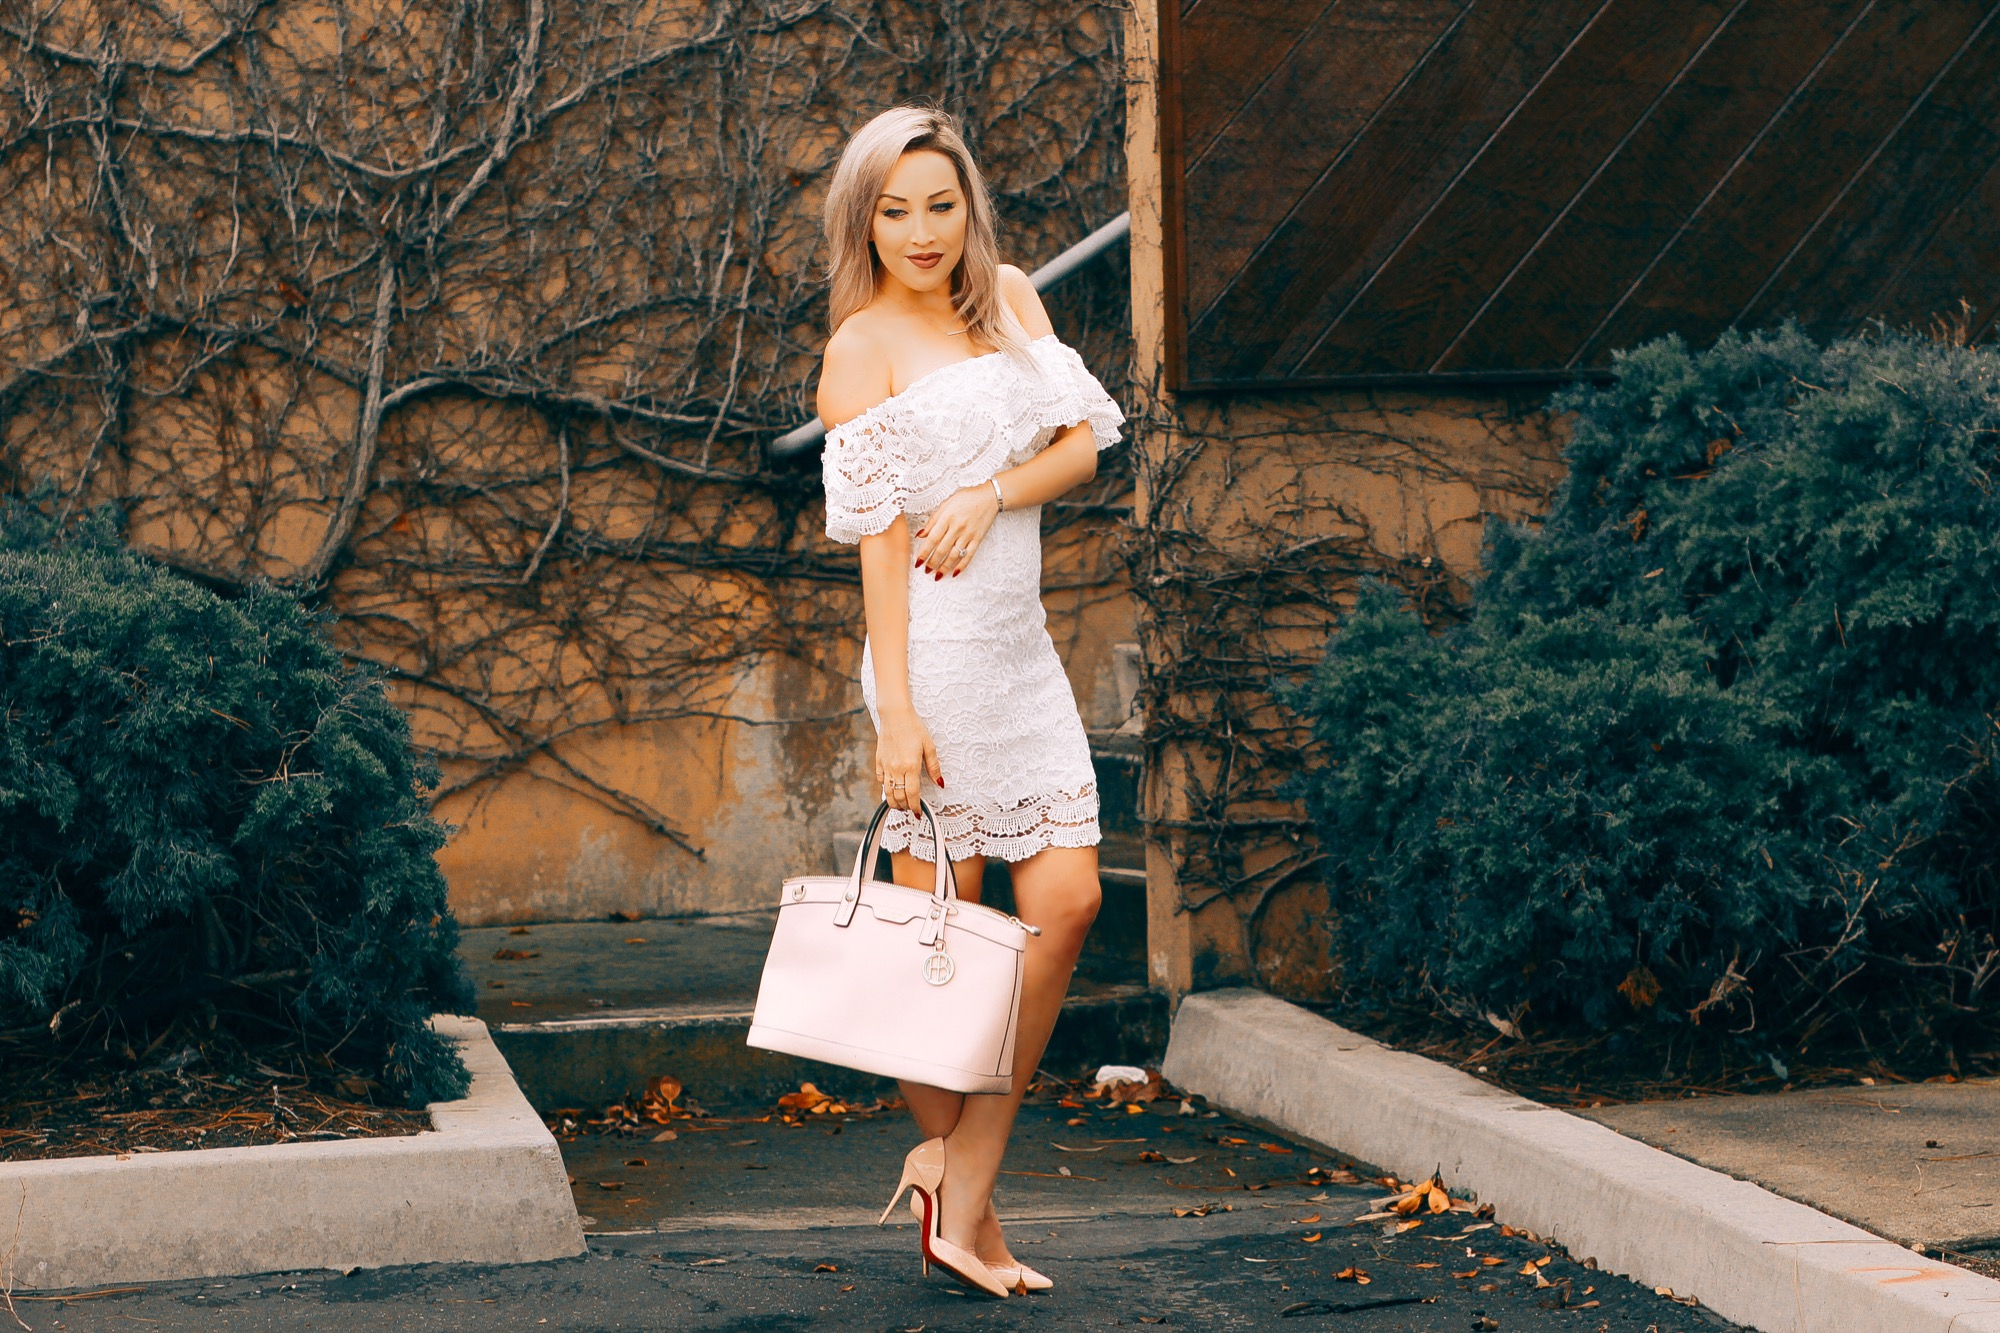 Blondie in the City | White Lace Bridal Shower Dress